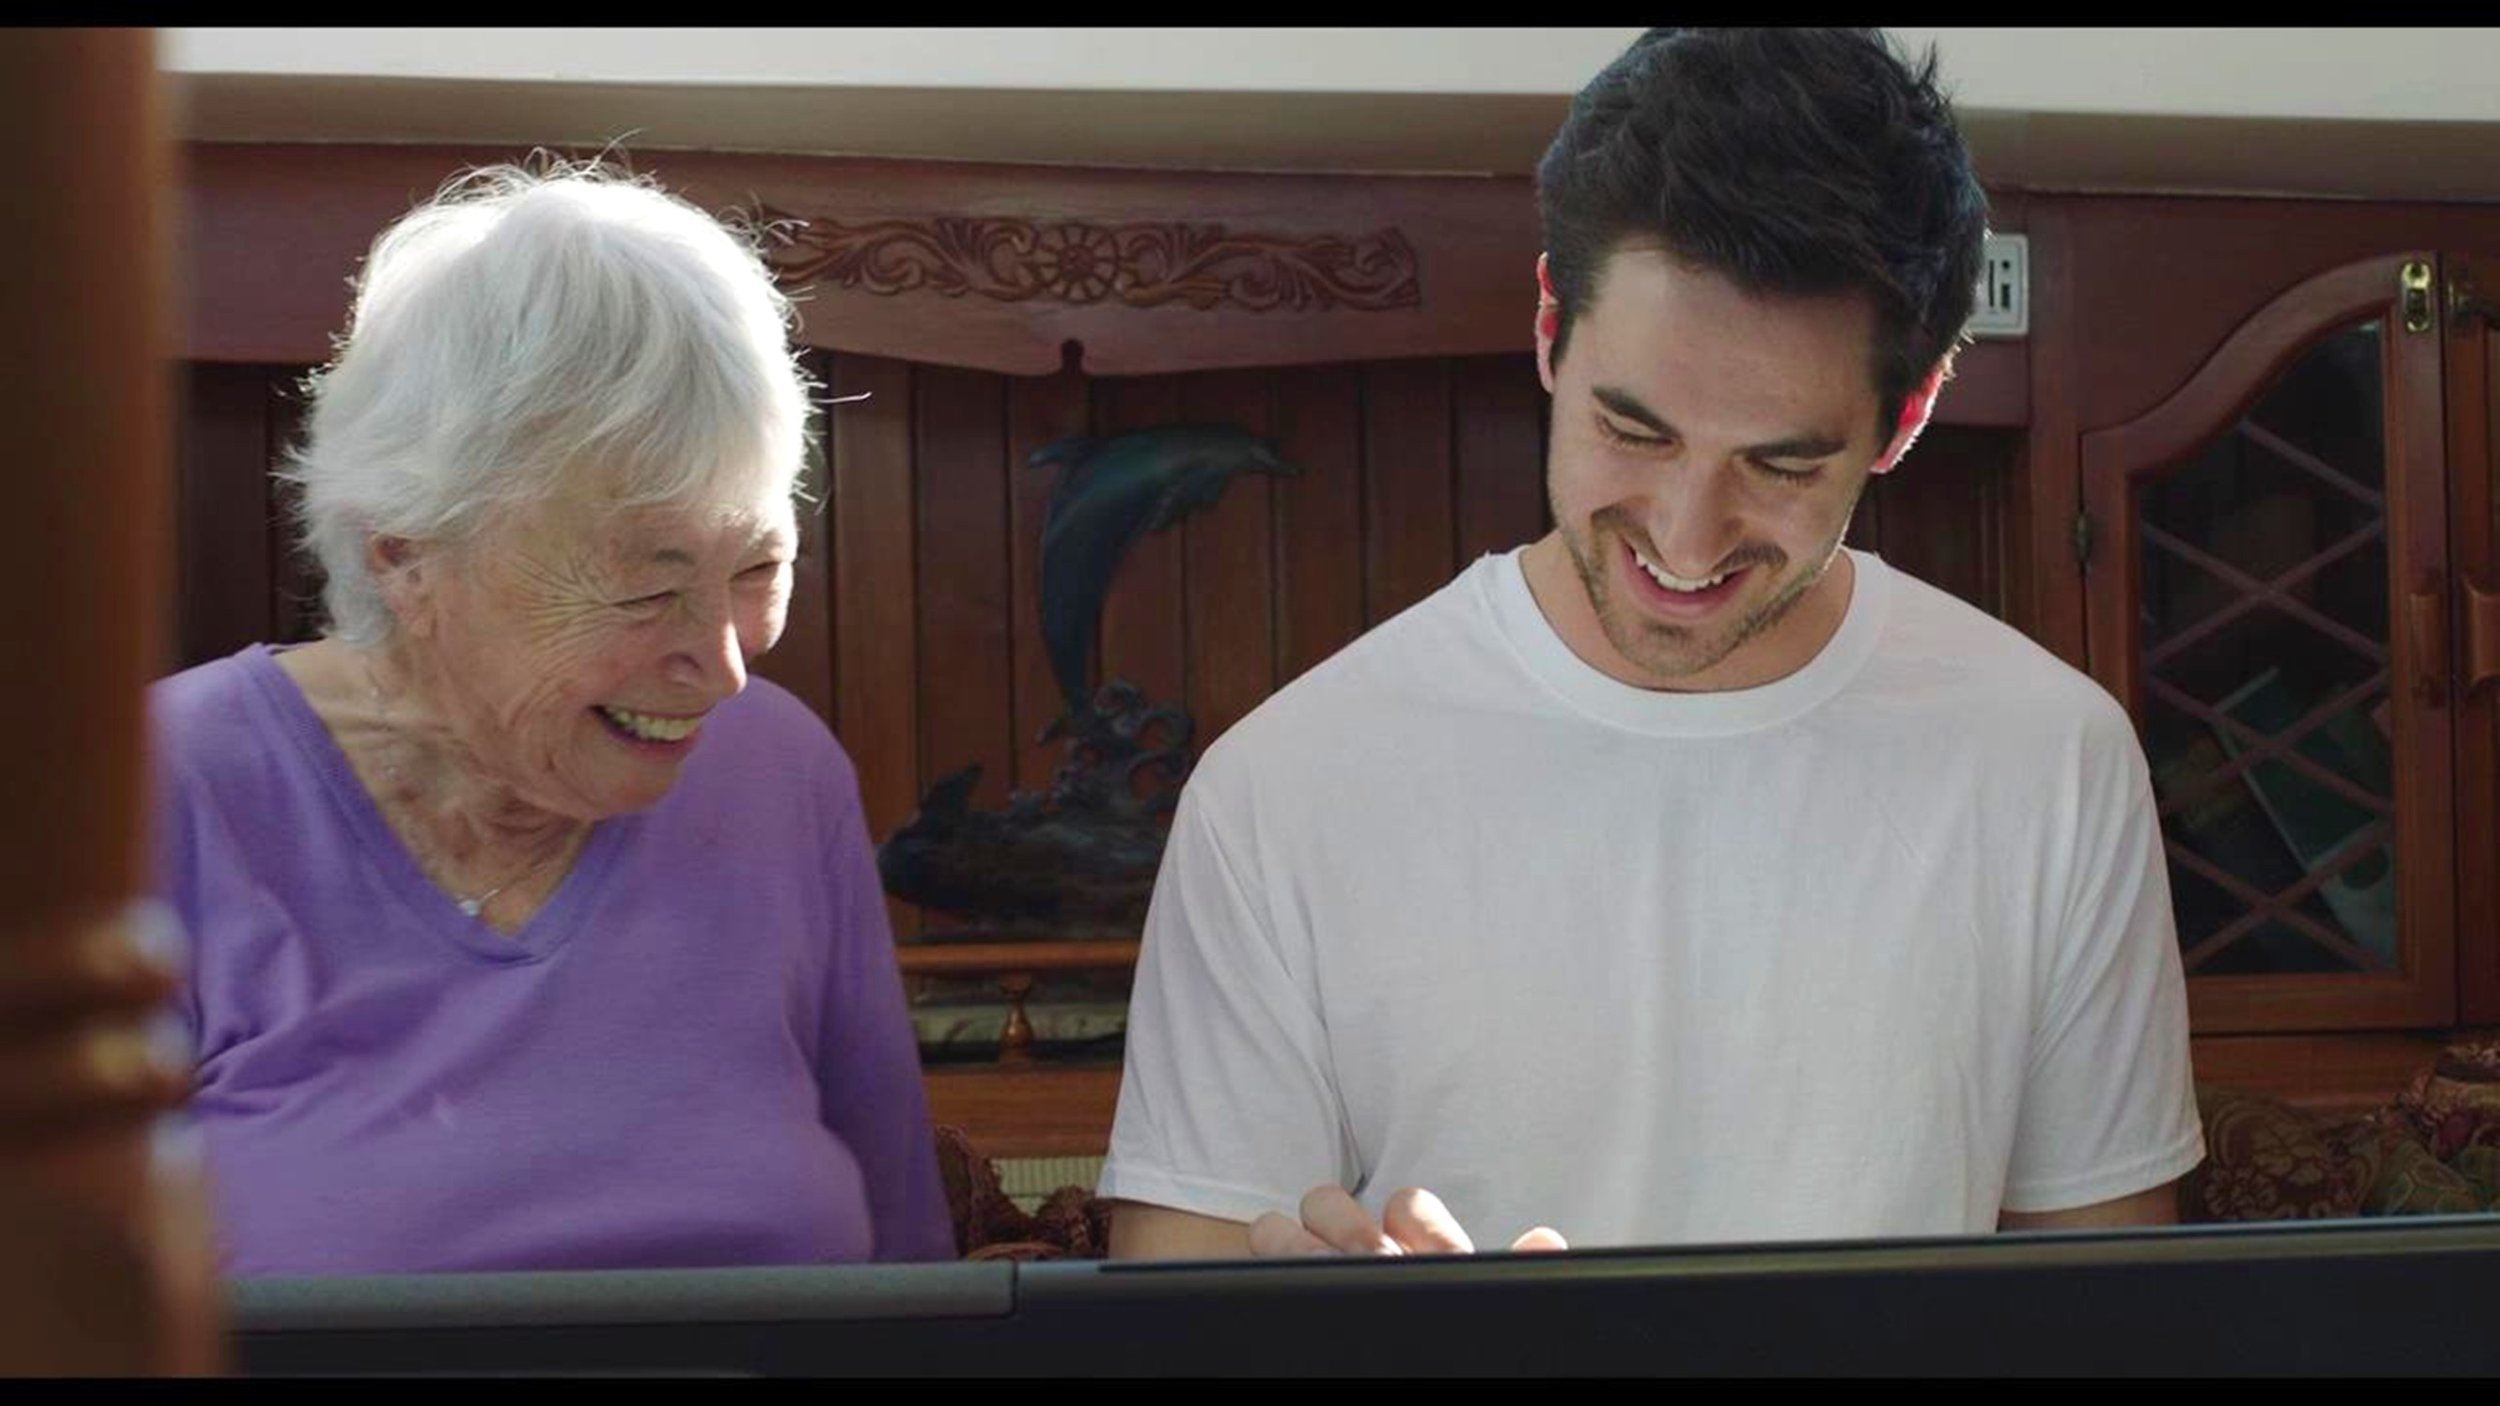 Both smiling at keyboard.jpg